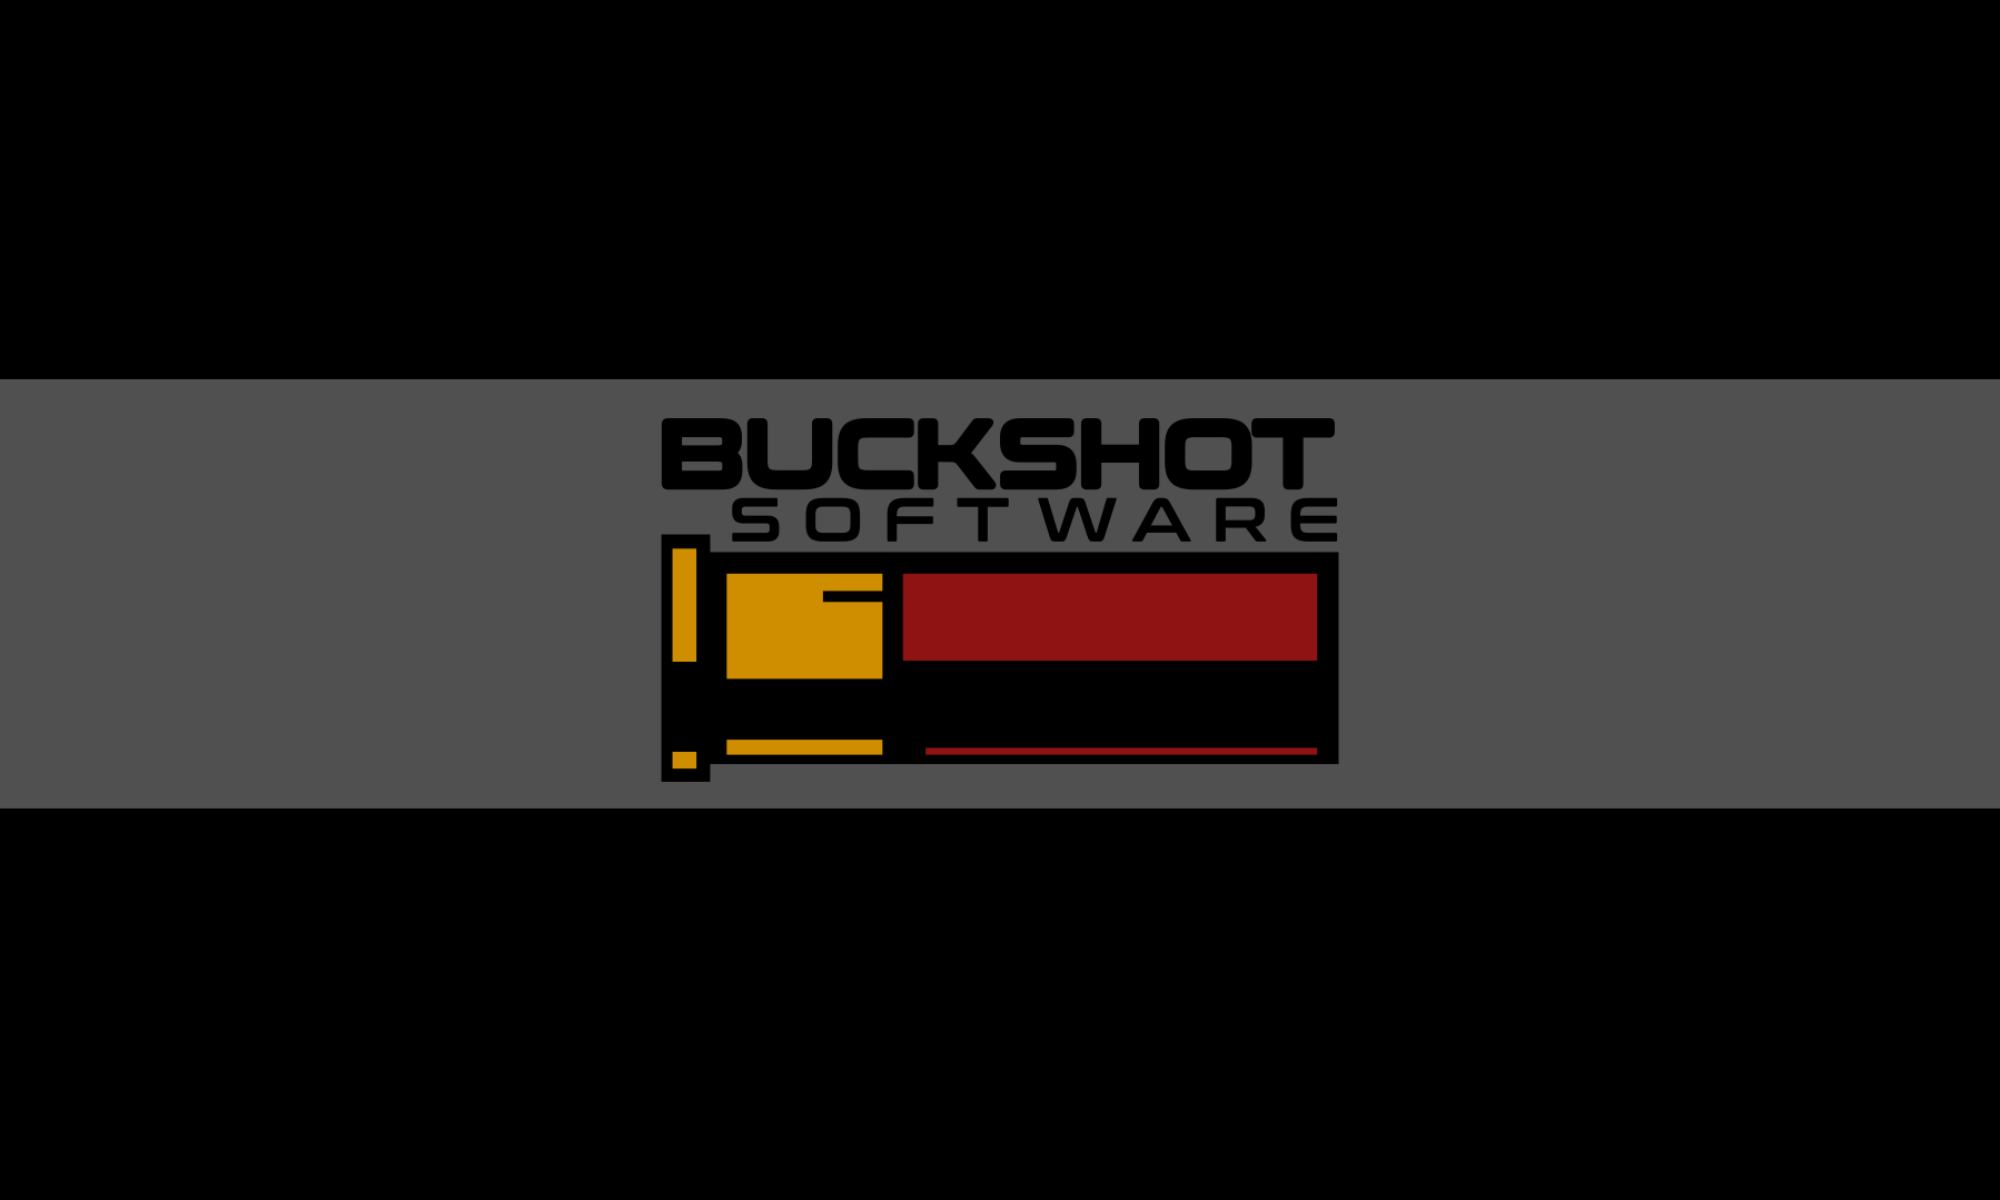 Buckshot Software.